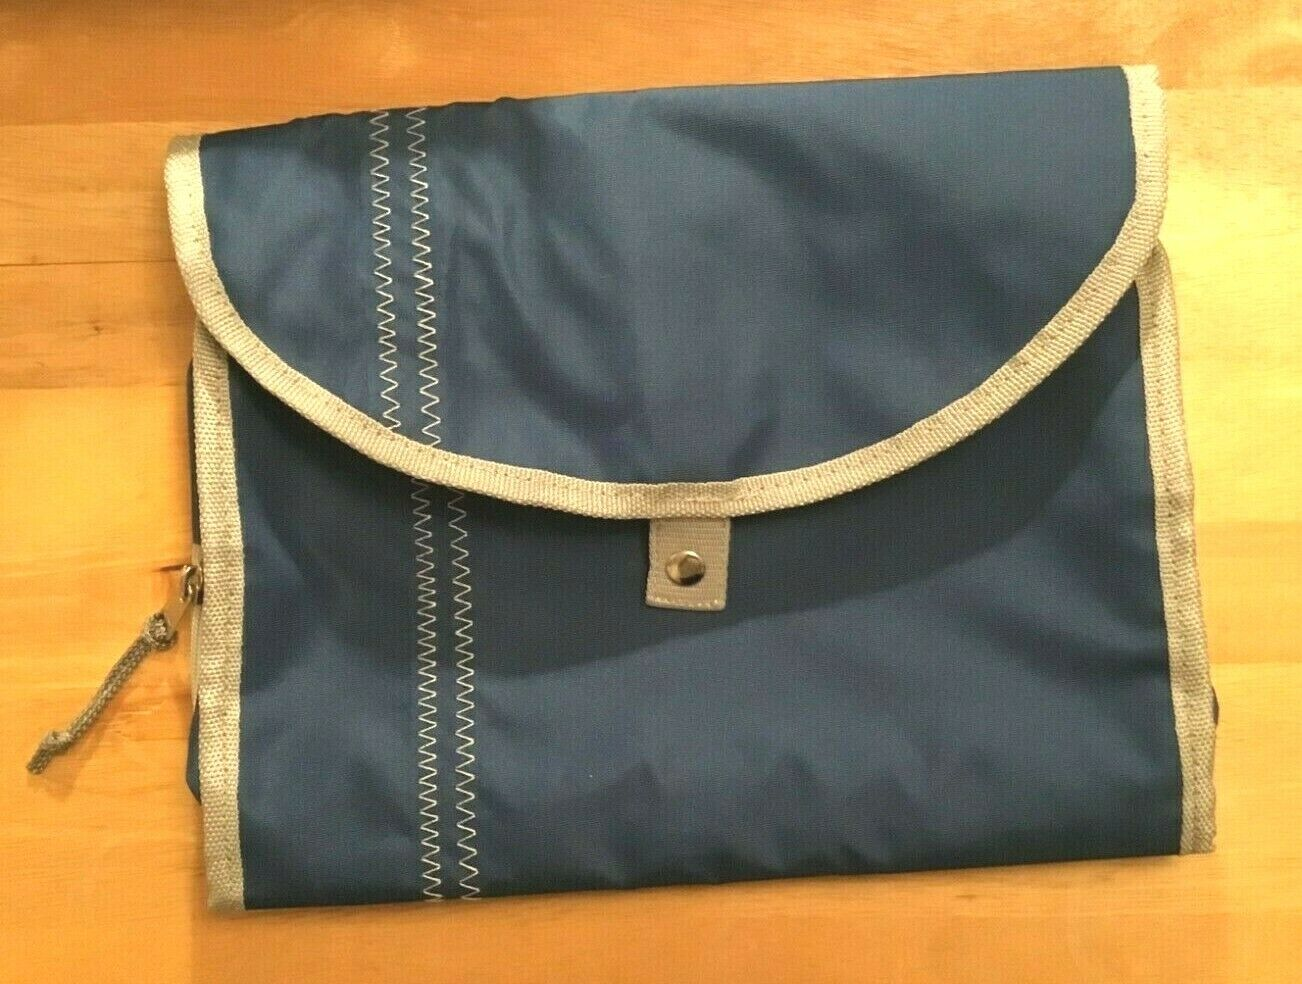 Men In Cities Nomad Hanging Toiltery Bag In Blue - $10.99